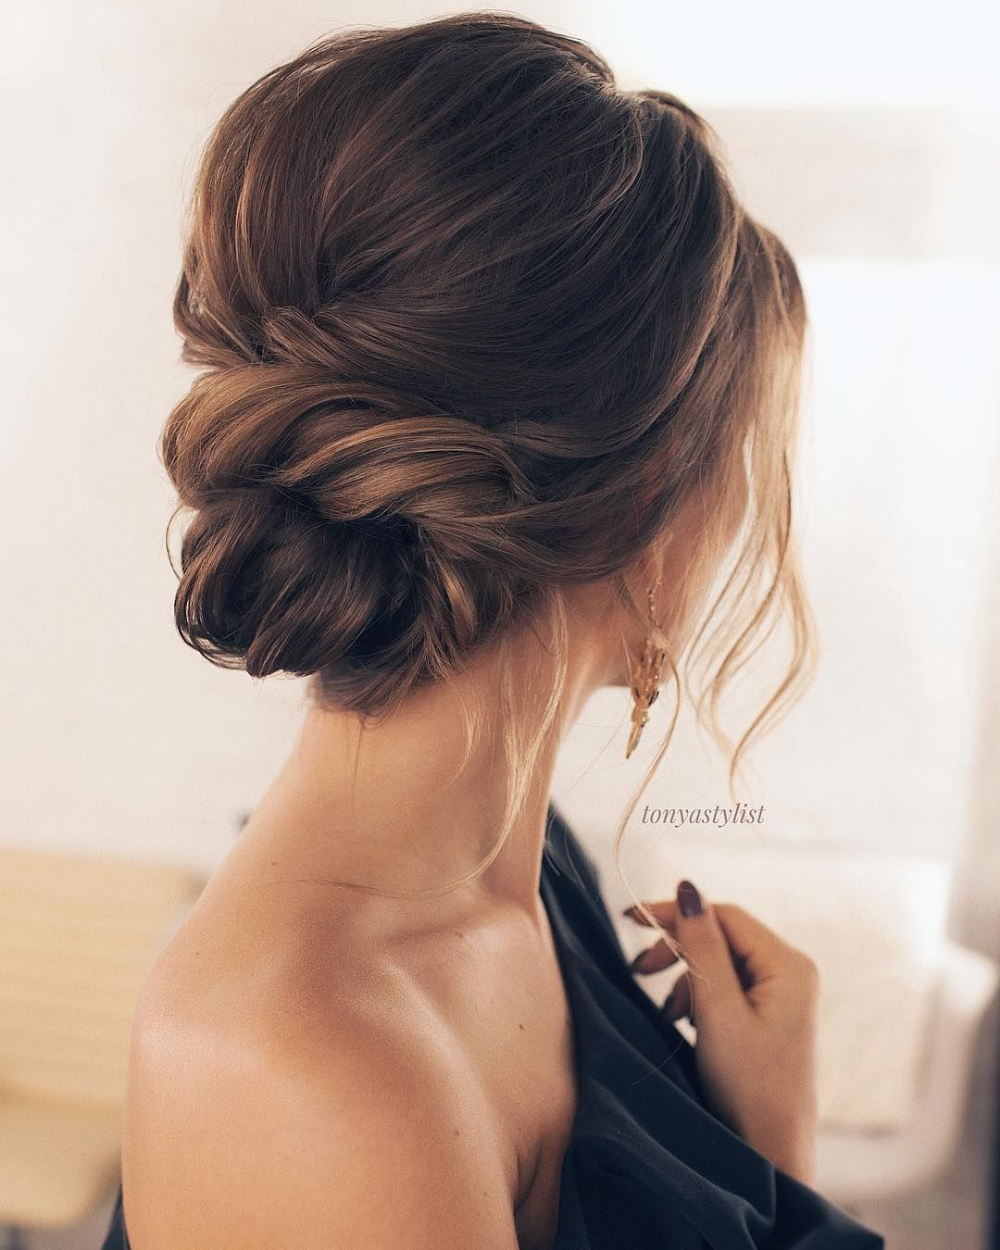 31 Drop-Dead Wedding Hairstyles for all Brides - E